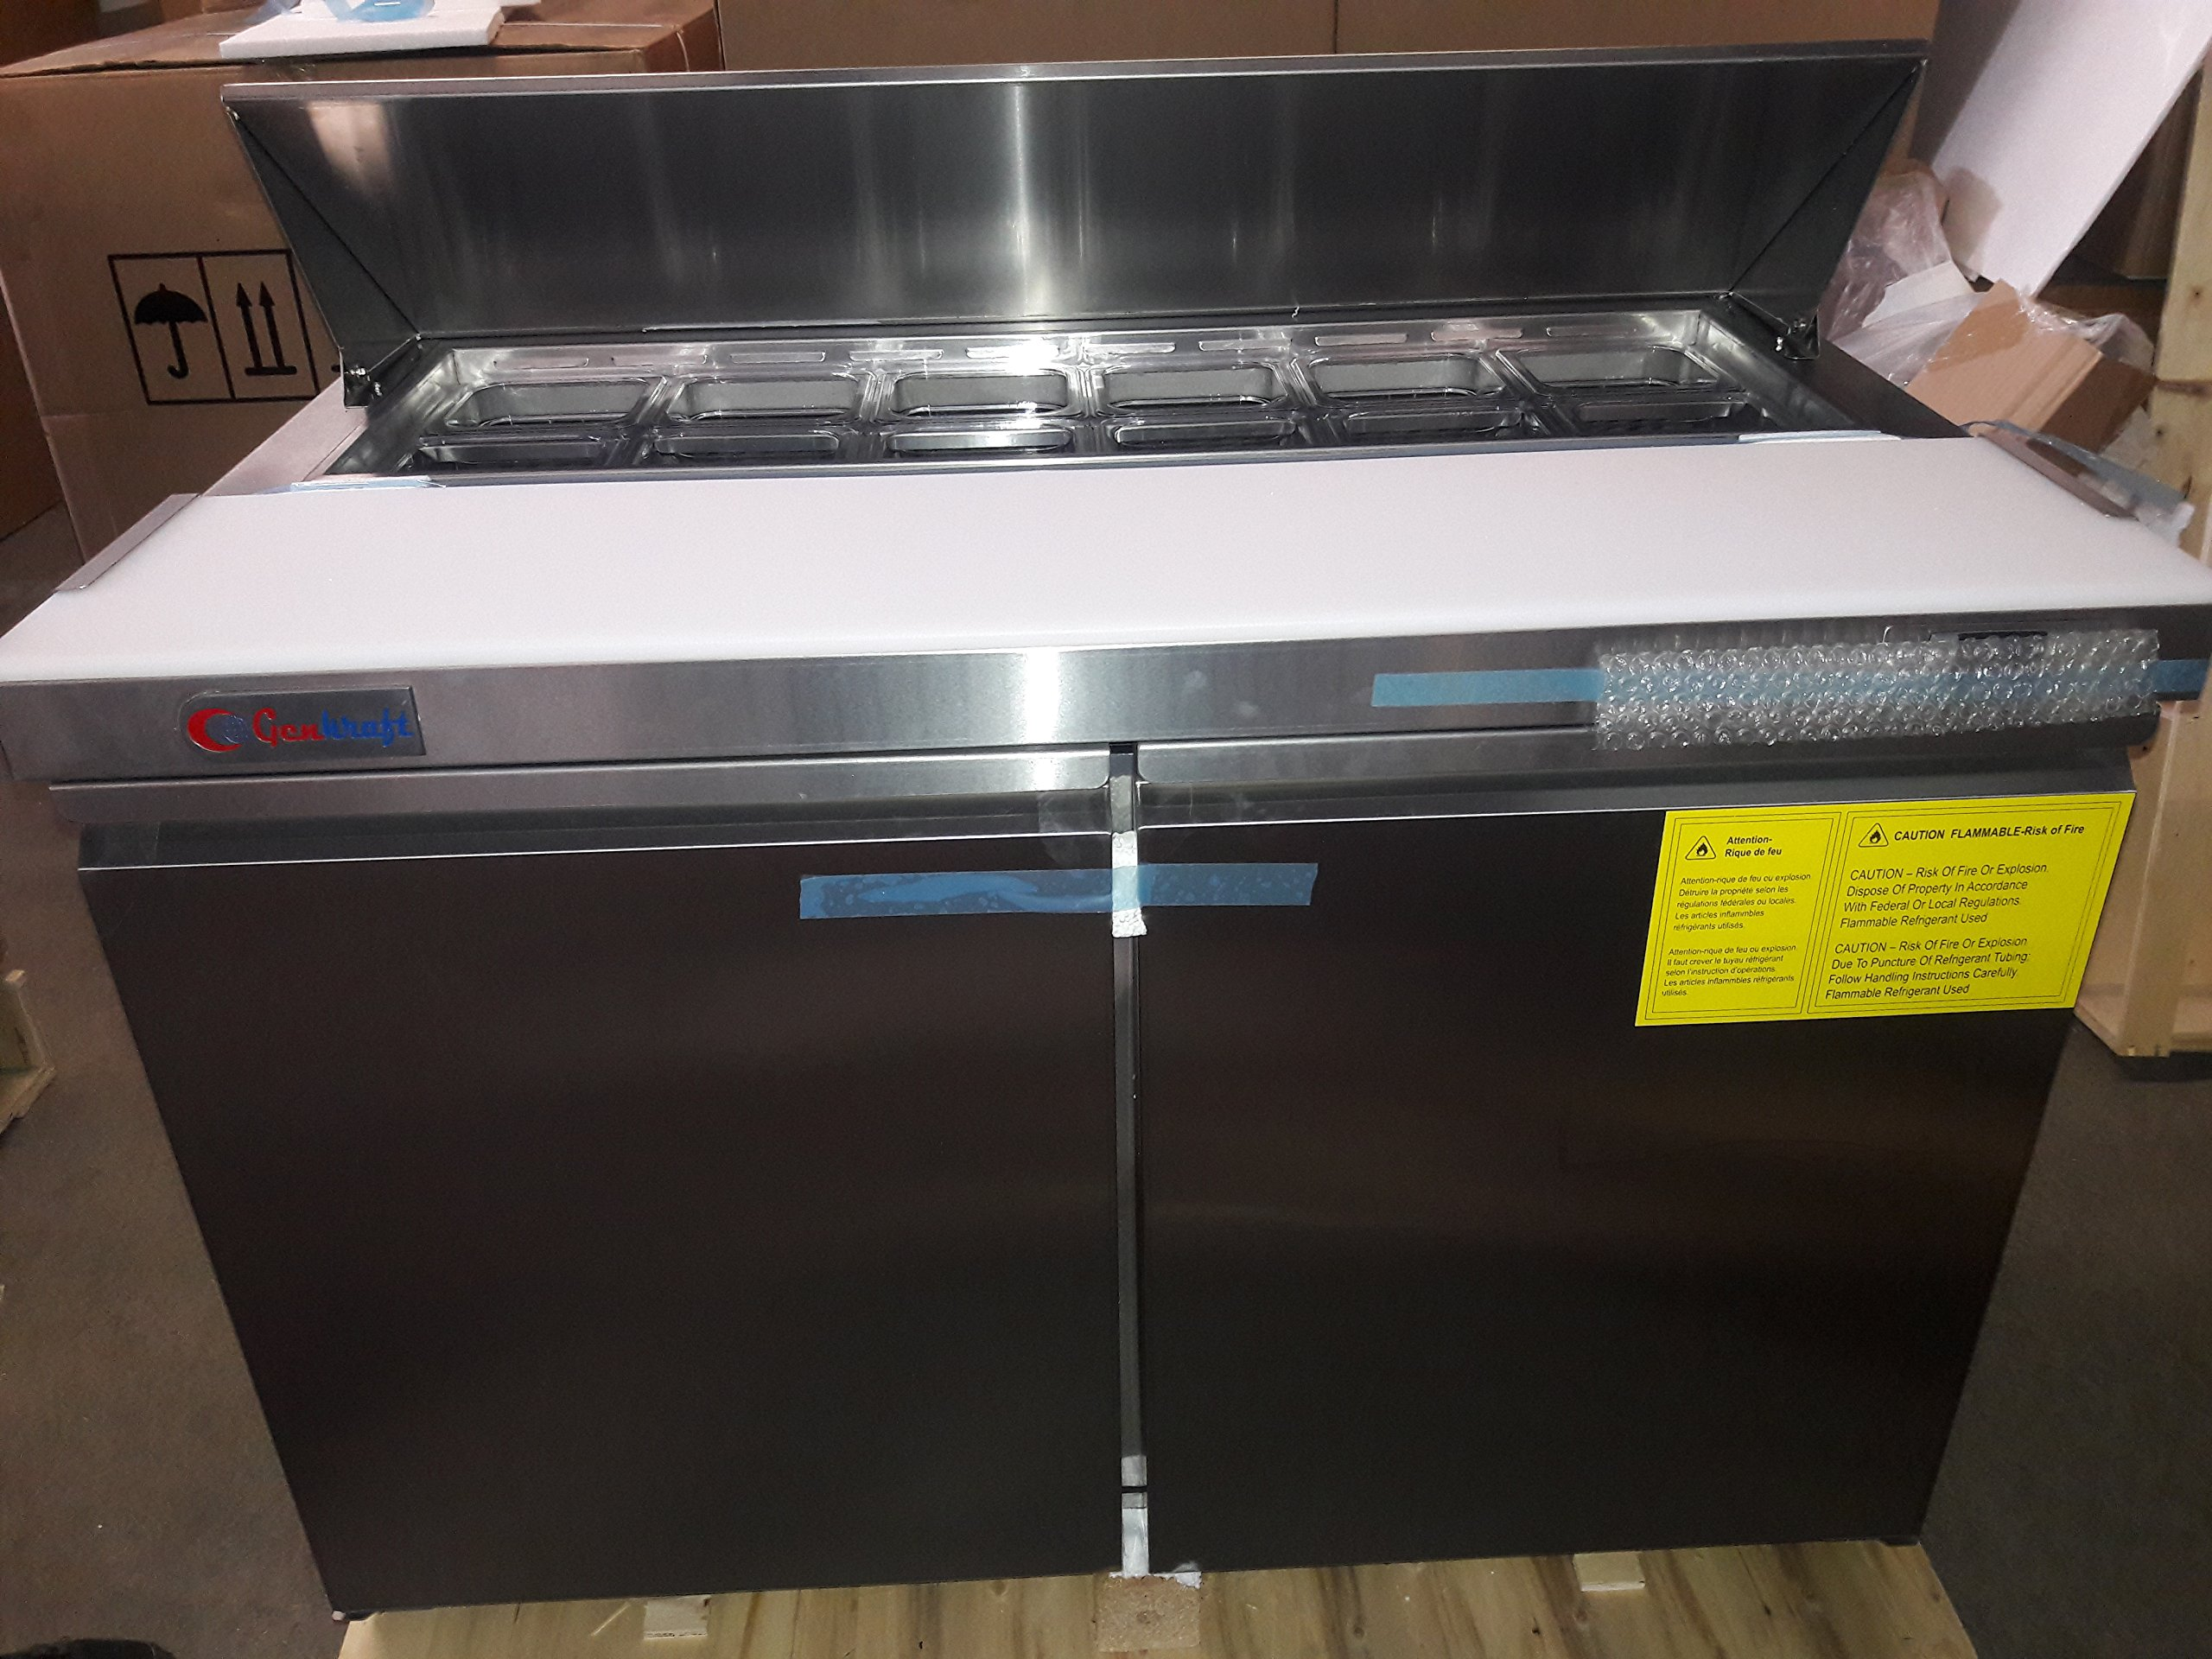 GenKraft Commercial Sandwich Prep Table, 48 inch Stainless Steel, - For use in the Stores & food service industry such as restaurants, bars, food catering, etc.